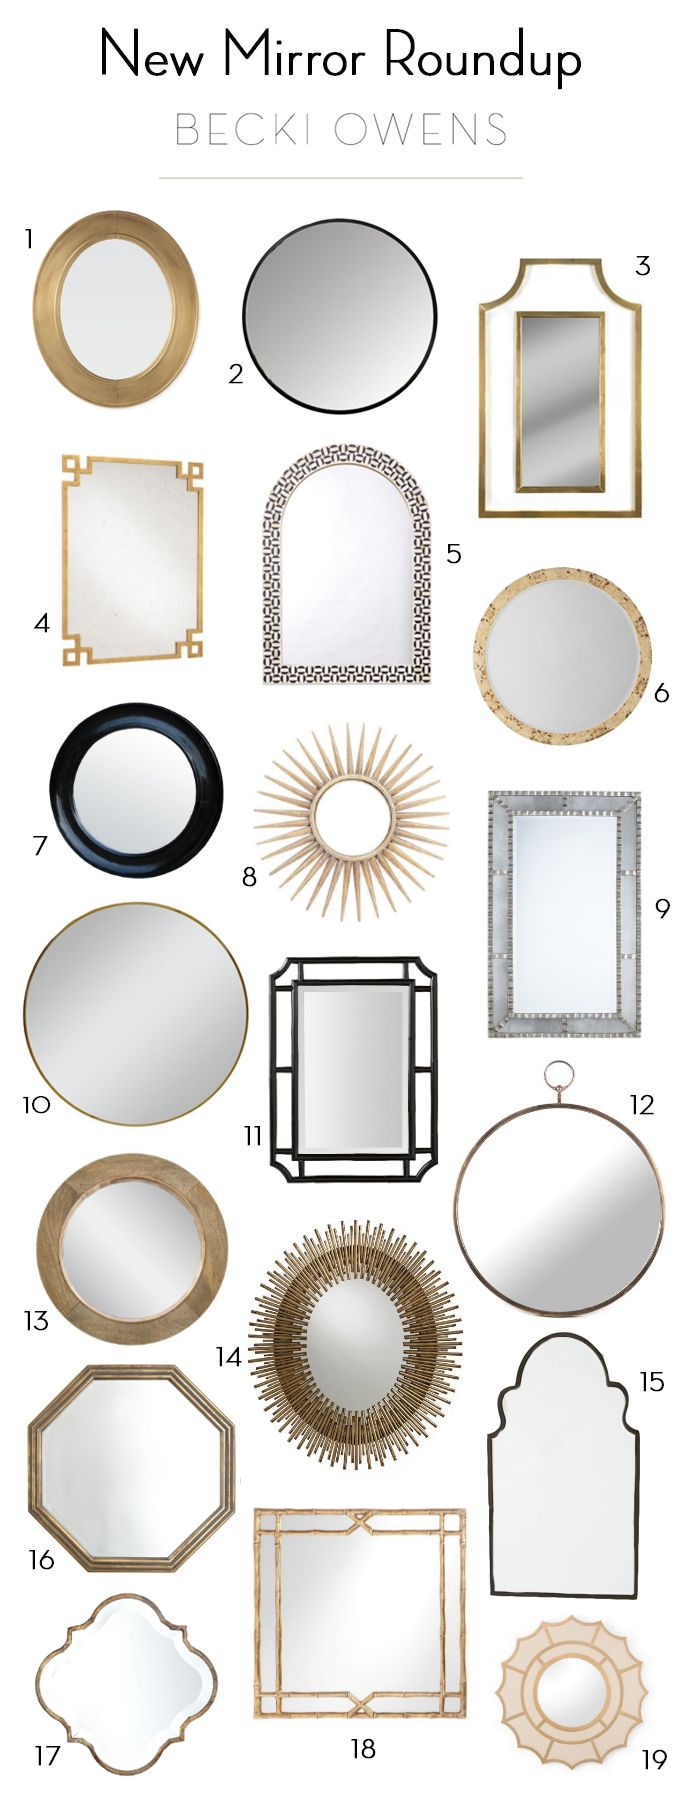 / See more of this entry space here / Remember the guest prep post from last week on making a great first impression with a beautiful entry? To follow up I did some shopping over the weekend and updated my mirror shop with a great selection of new mirrors. A mirror styled above a …